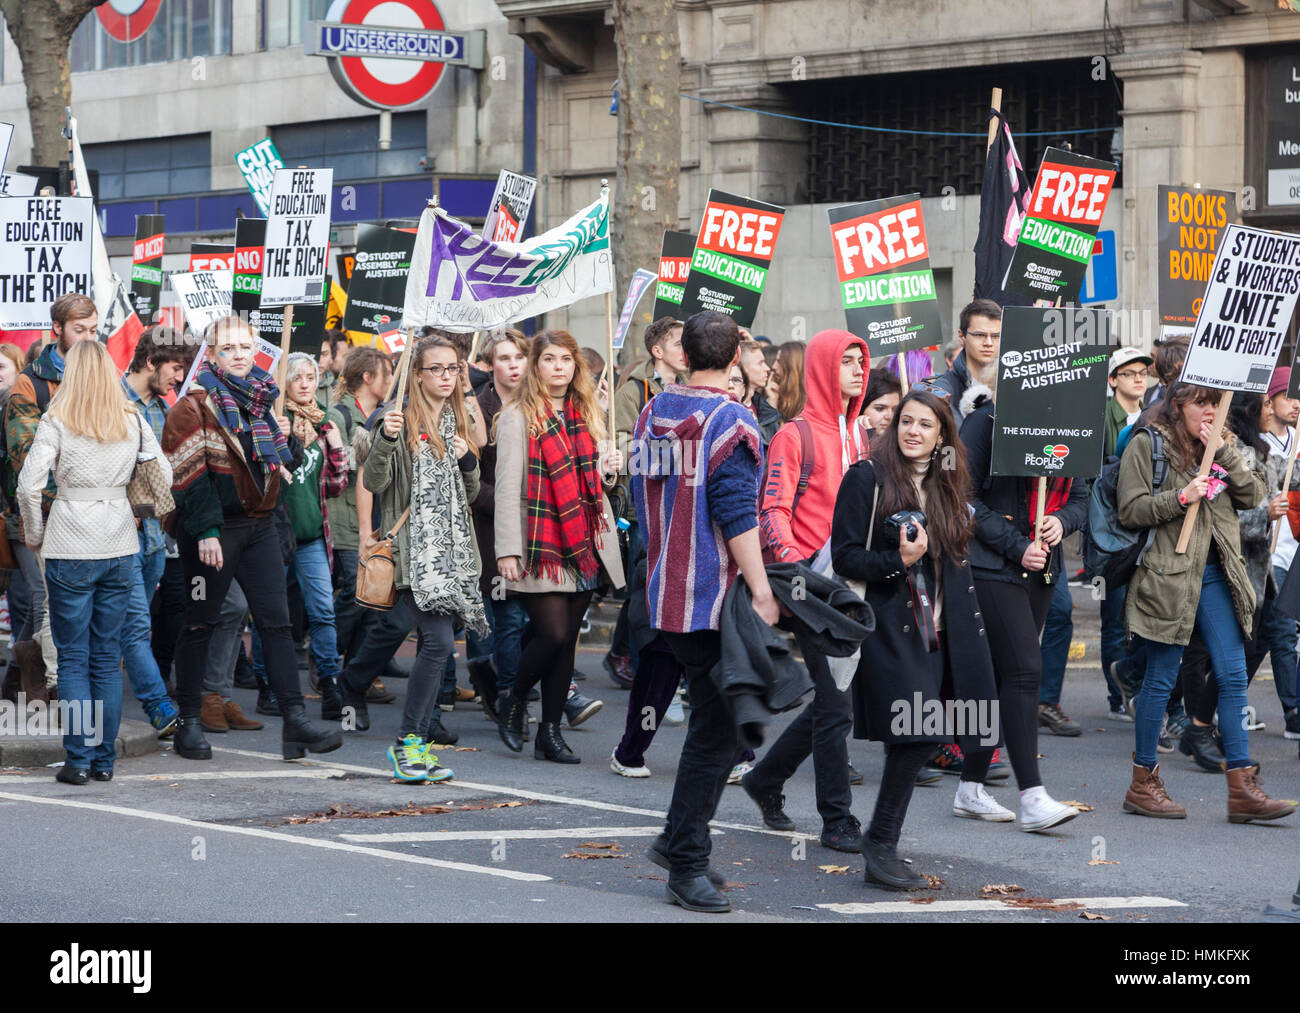 Student protest against education fees. They marched through London from Mallet Street through Whitehall to Parliament - Stock Image